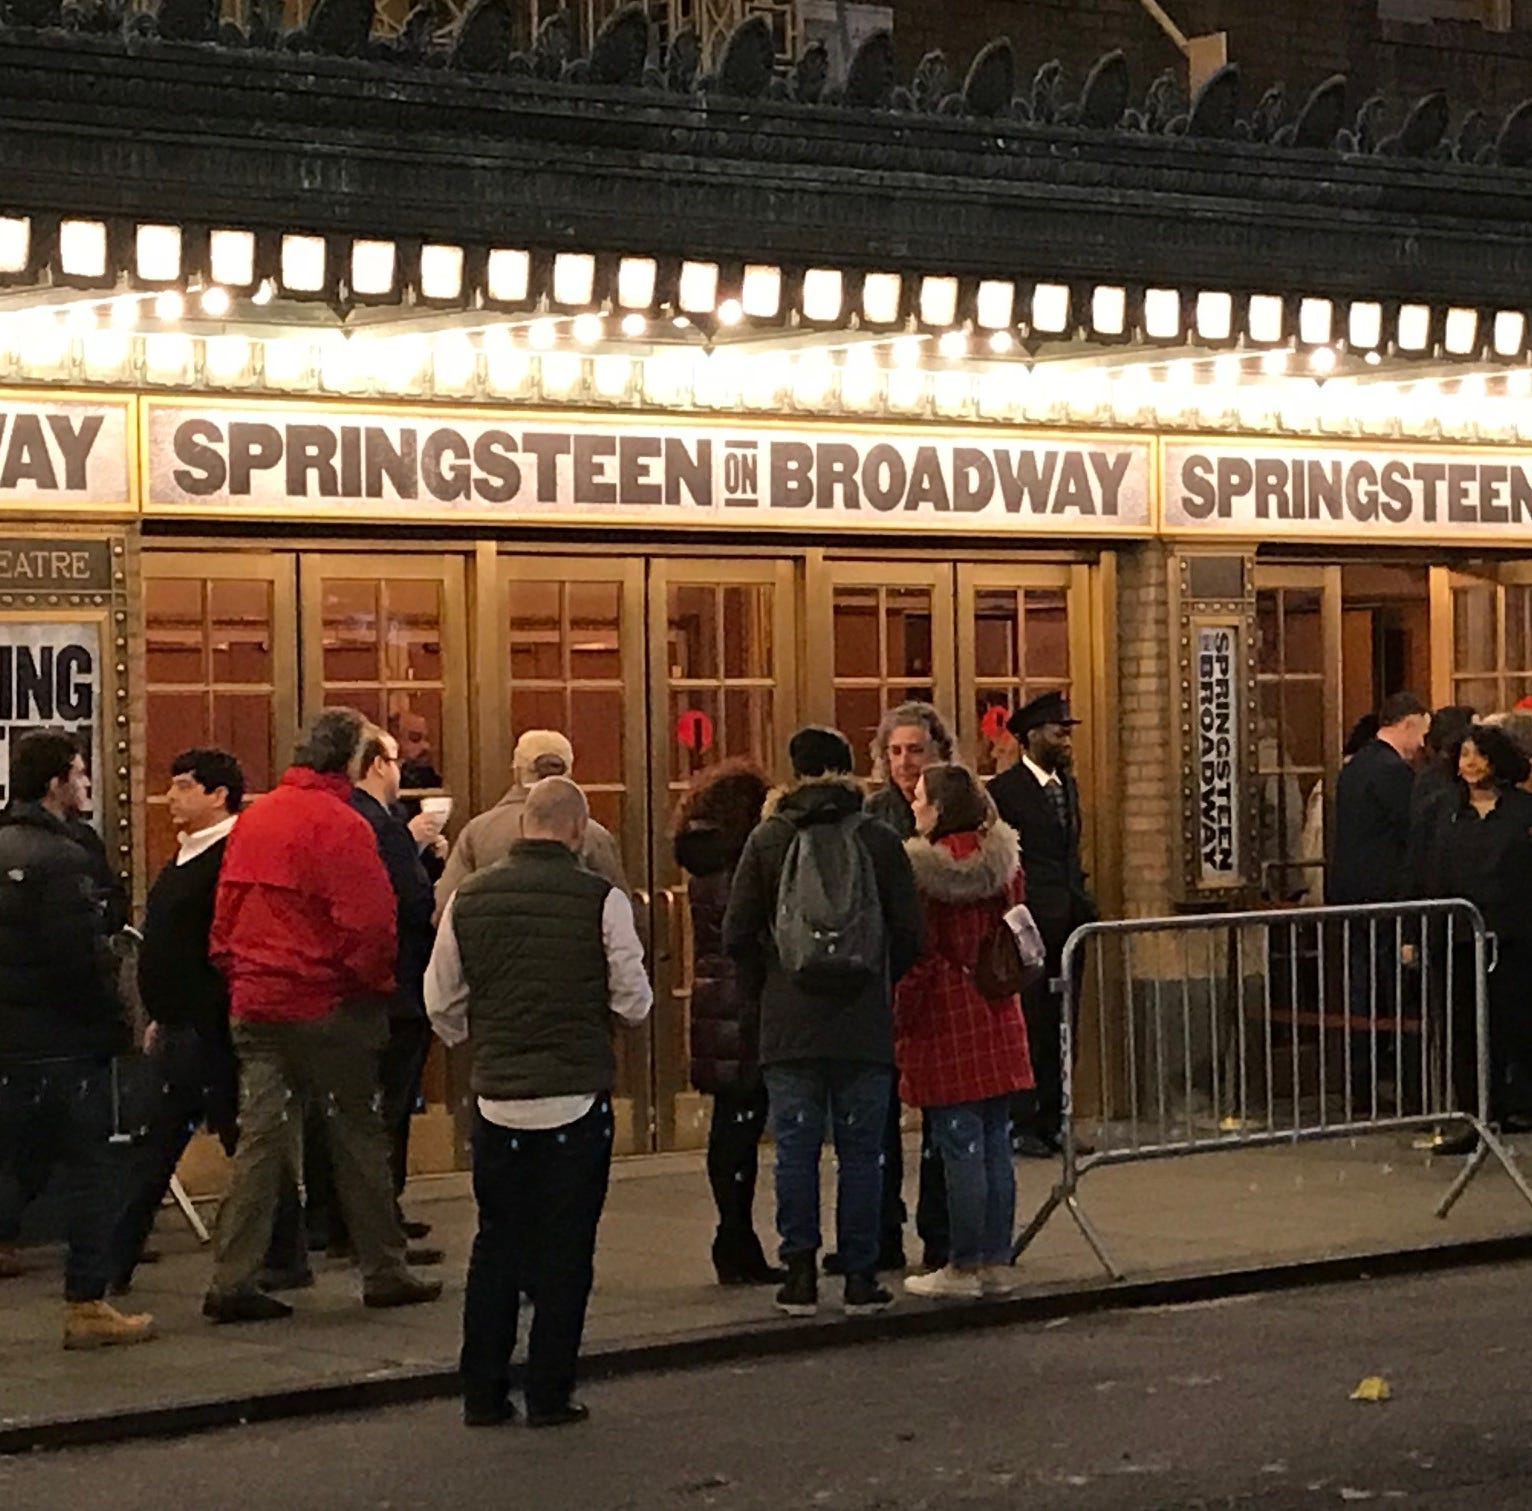 The scene outside the Walter Kerr Theatre on 48th Street in New York City prior to the final performance of 'Springsteen on Broadway' on Dec. 15, 2018.